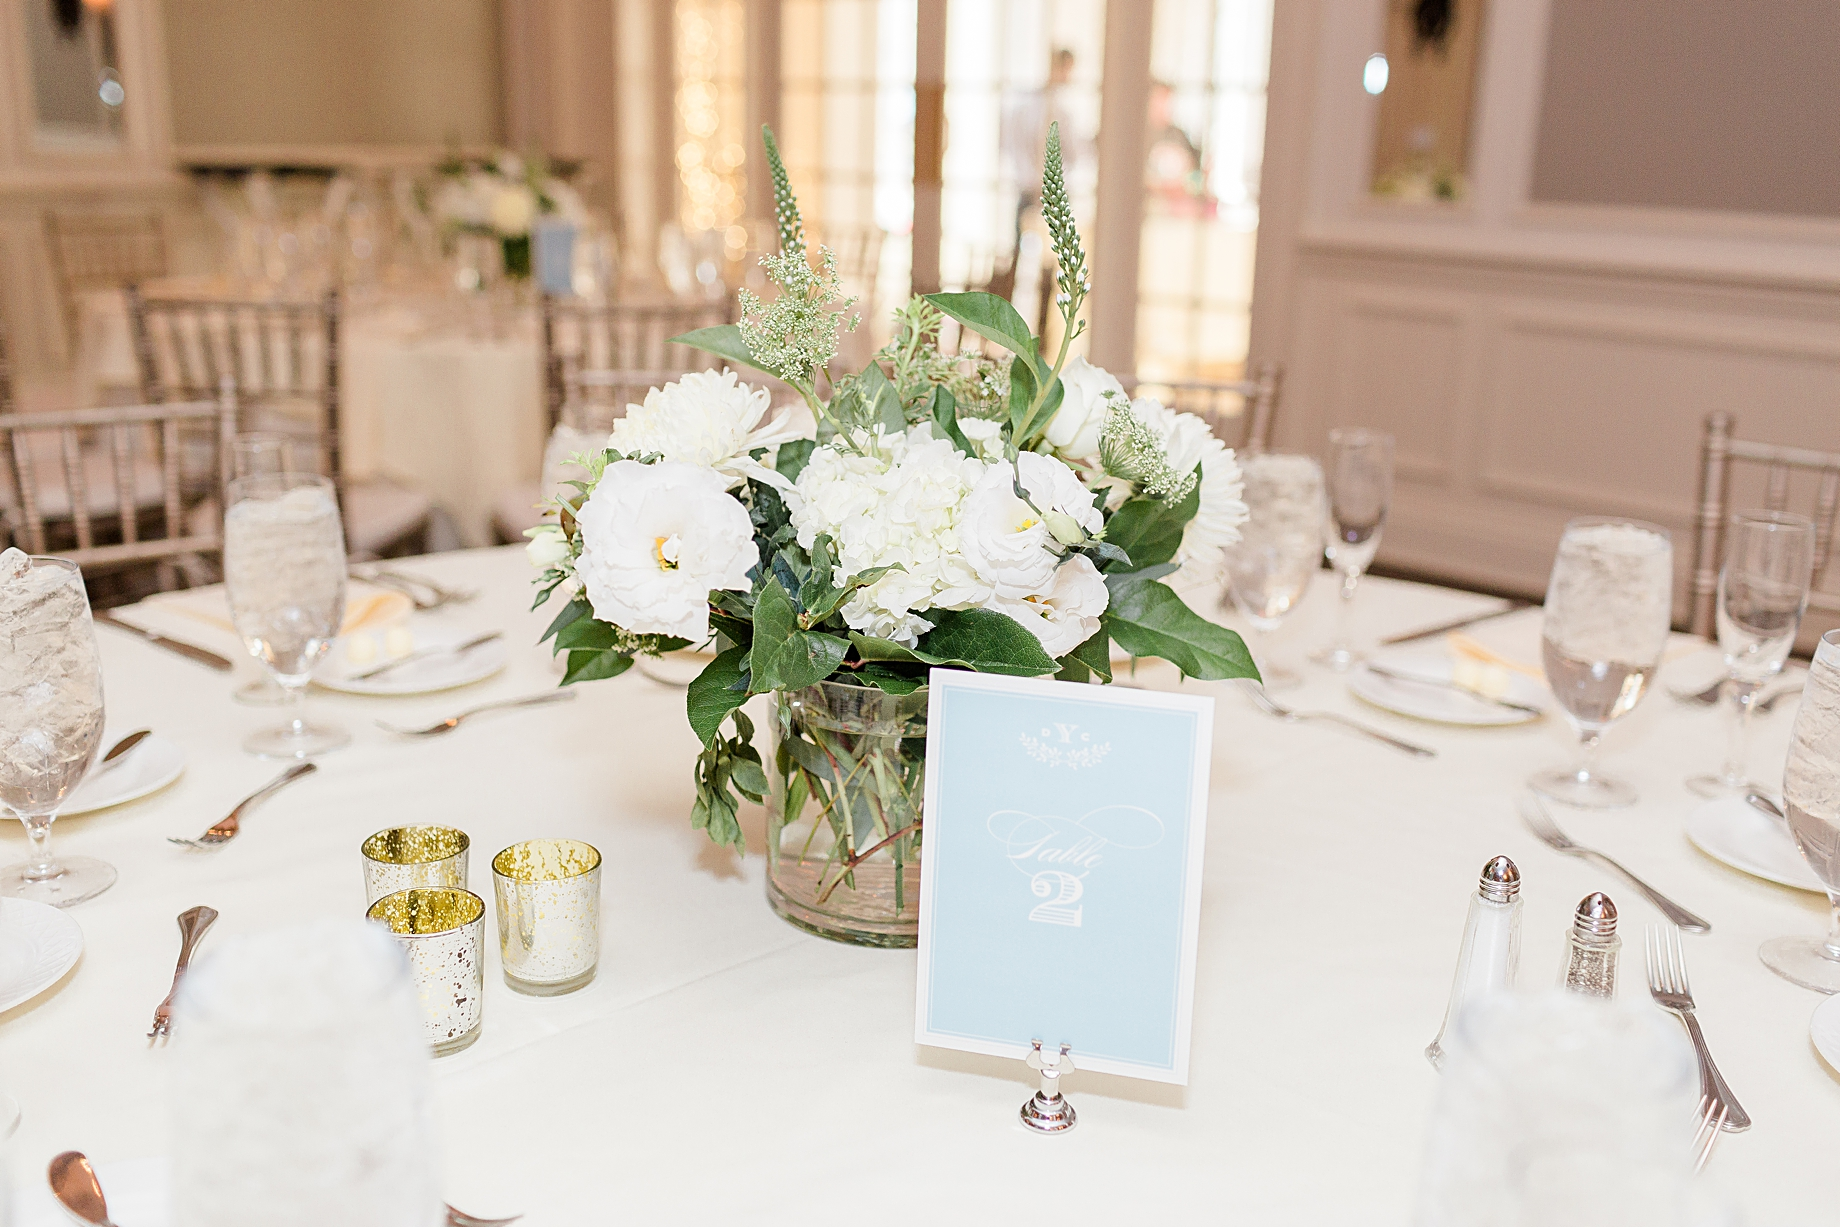 French Creek Golf Club Wedding Reception | Flowers by Blue Moon Florist